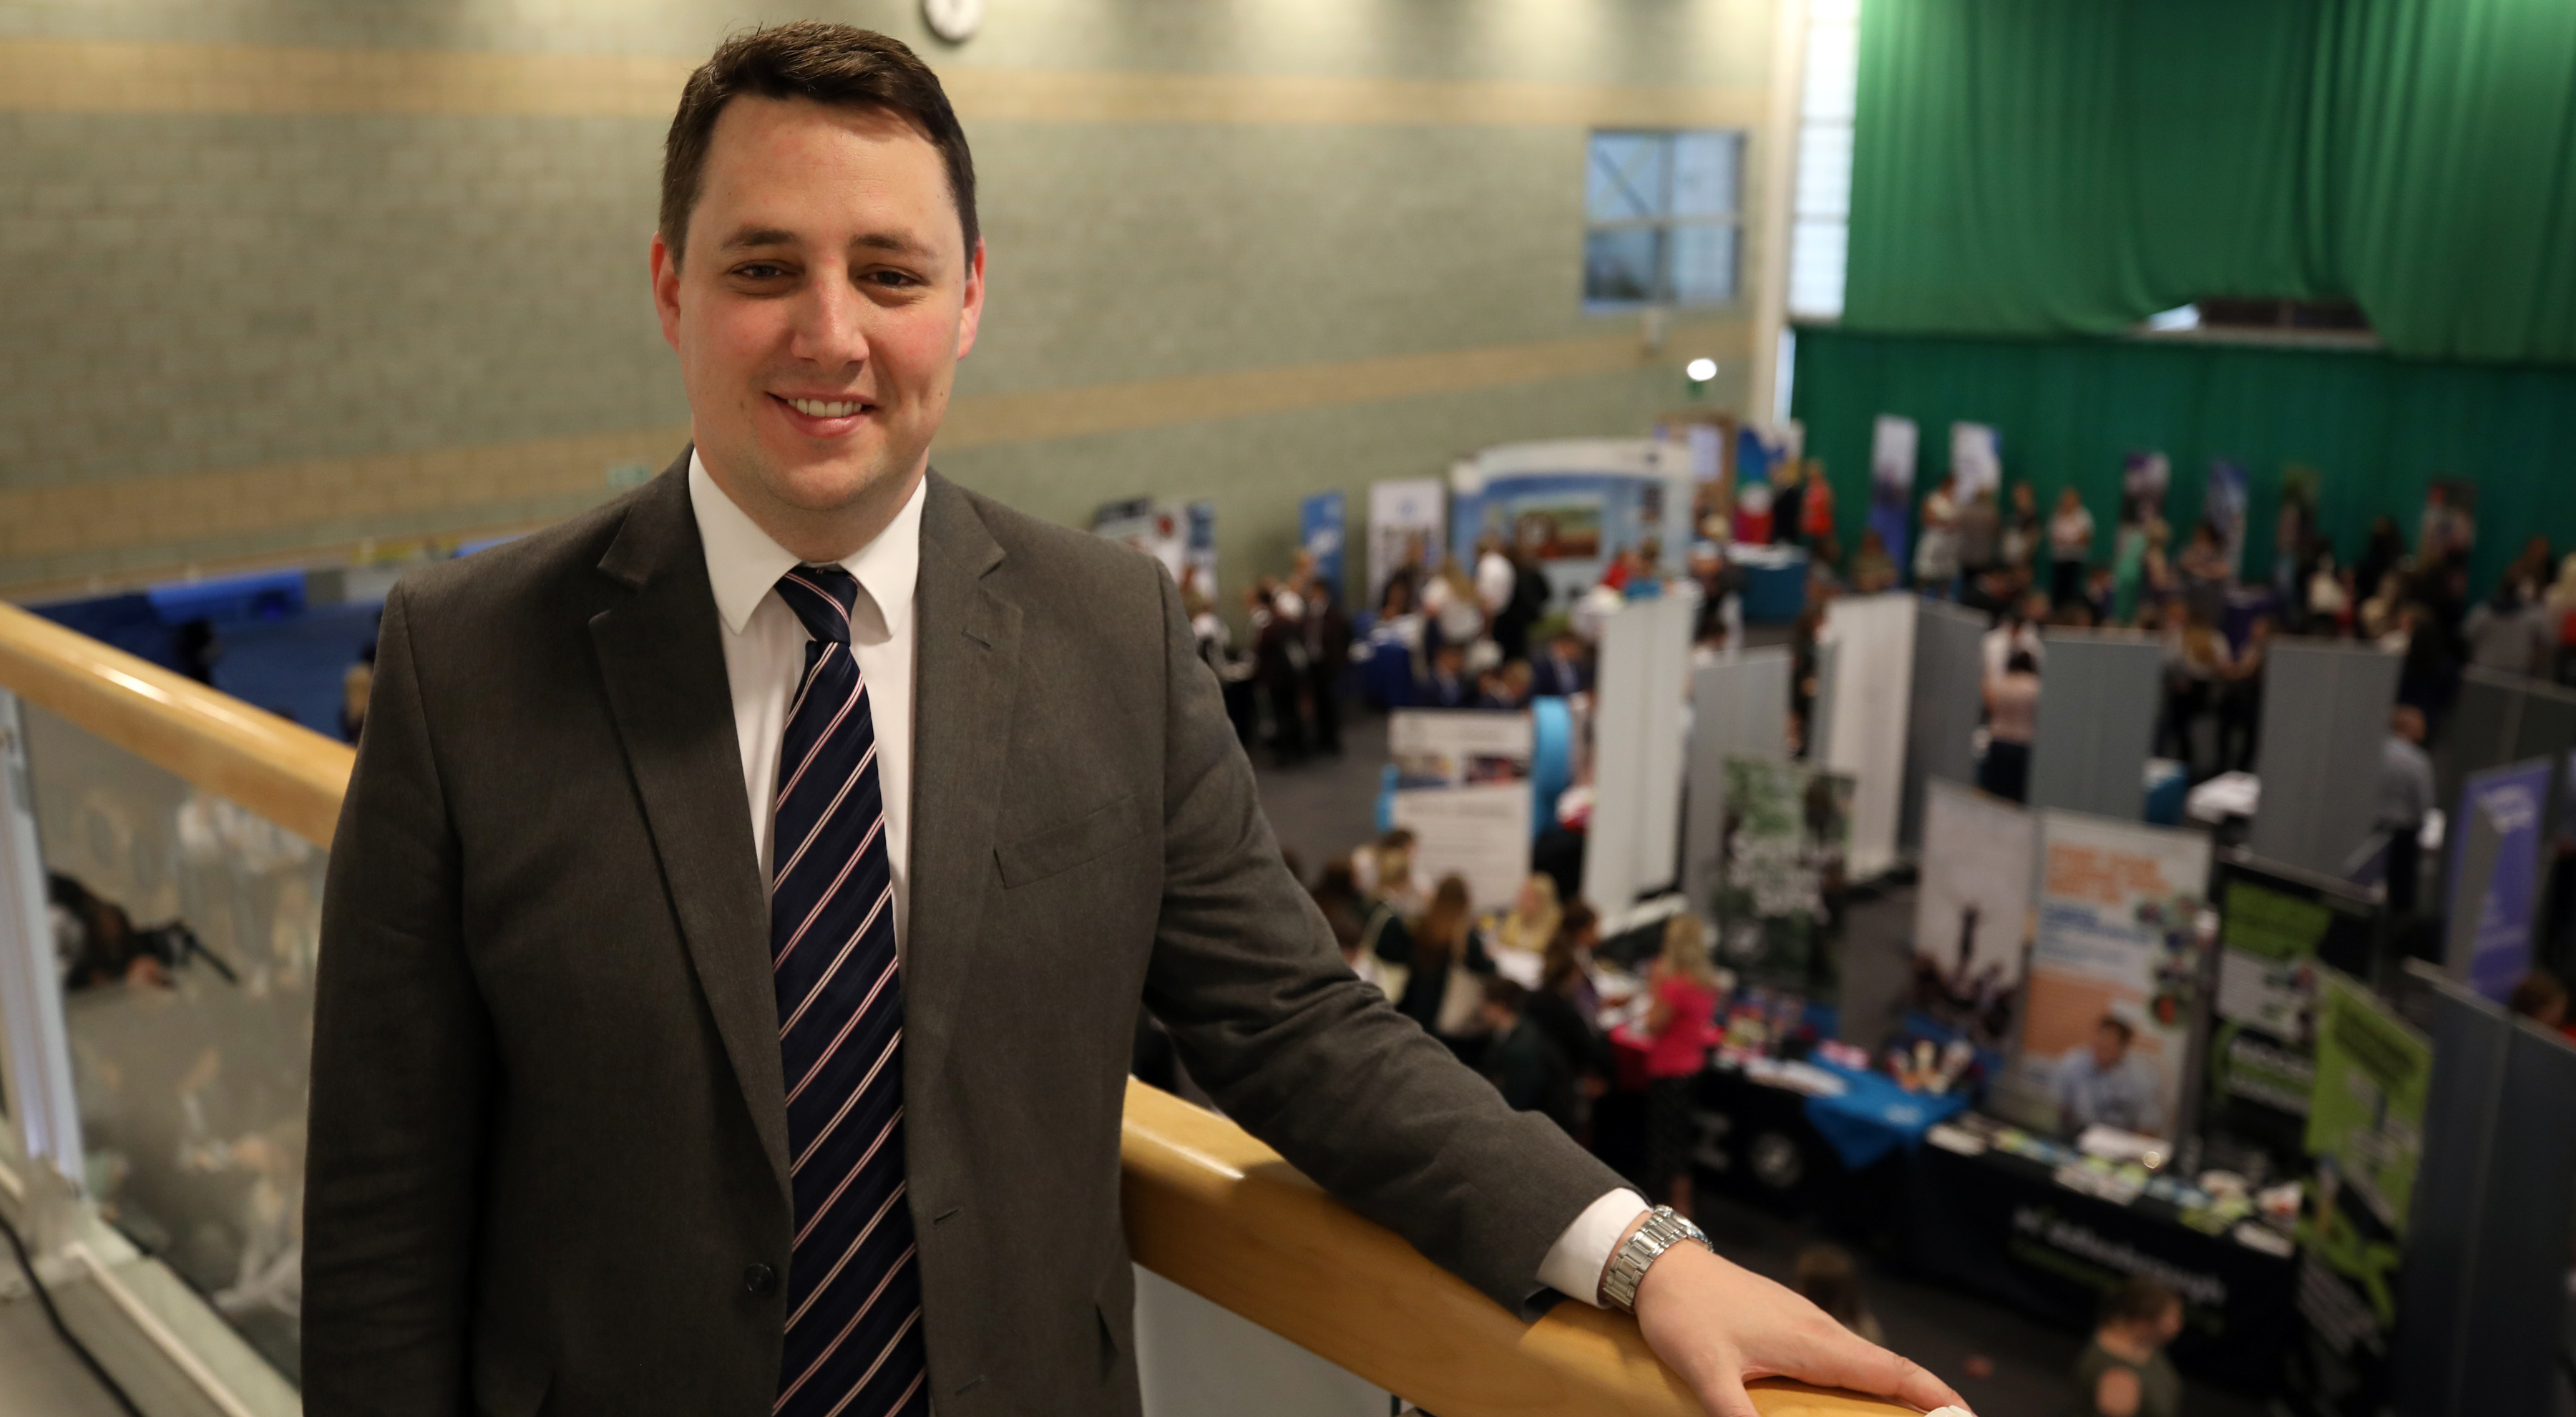 Tees Valley Mayor Ben Houchen at the Tees Valley Skills and STEM event.